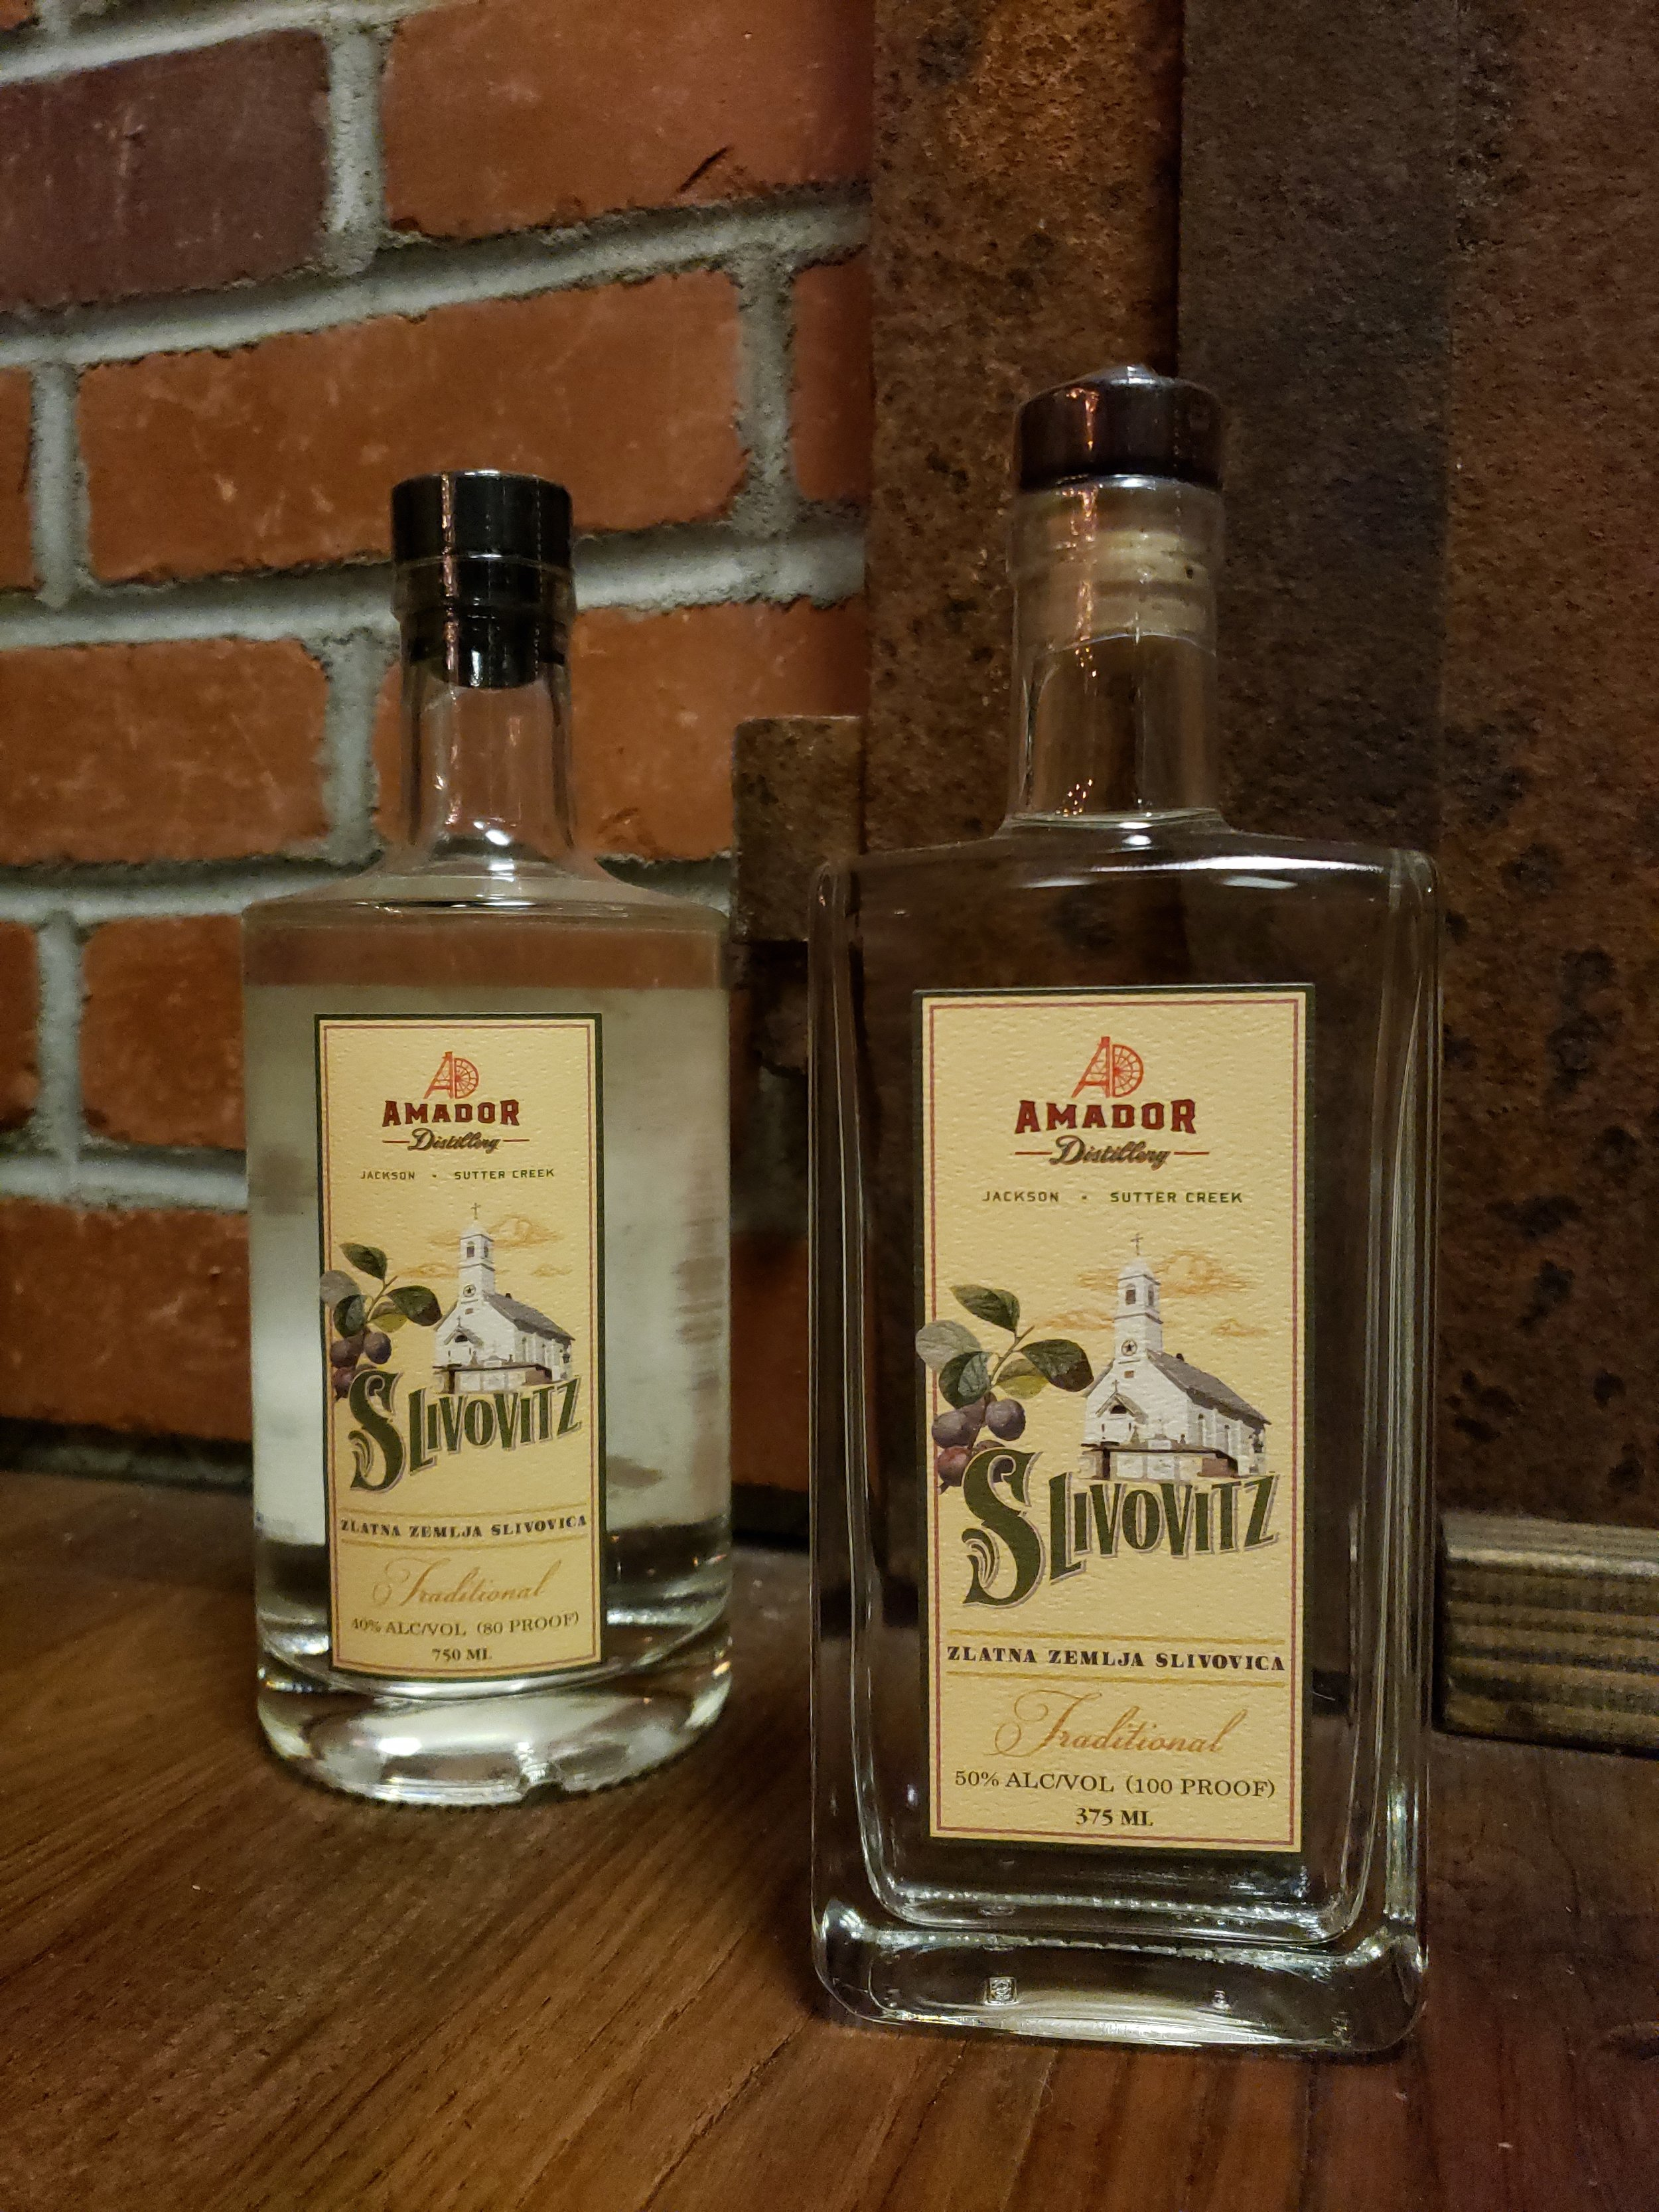 Slivovitz - This cultural spirit comes from the Serb-Croatian community. We make this for the St Sava Church community in Jackson, California and are proud of the heritage involved.This is a plum brandy that combines a complex array of flavors that can be enjoyed neat or over ice. While a potent spirit style, the traditional approach is clean and tight with the plum coming in late in the mouth.This is a seasonal product and limited production. We retain very few bottles for the tasting room as most go to the community for which it is made.80 & 100 PF